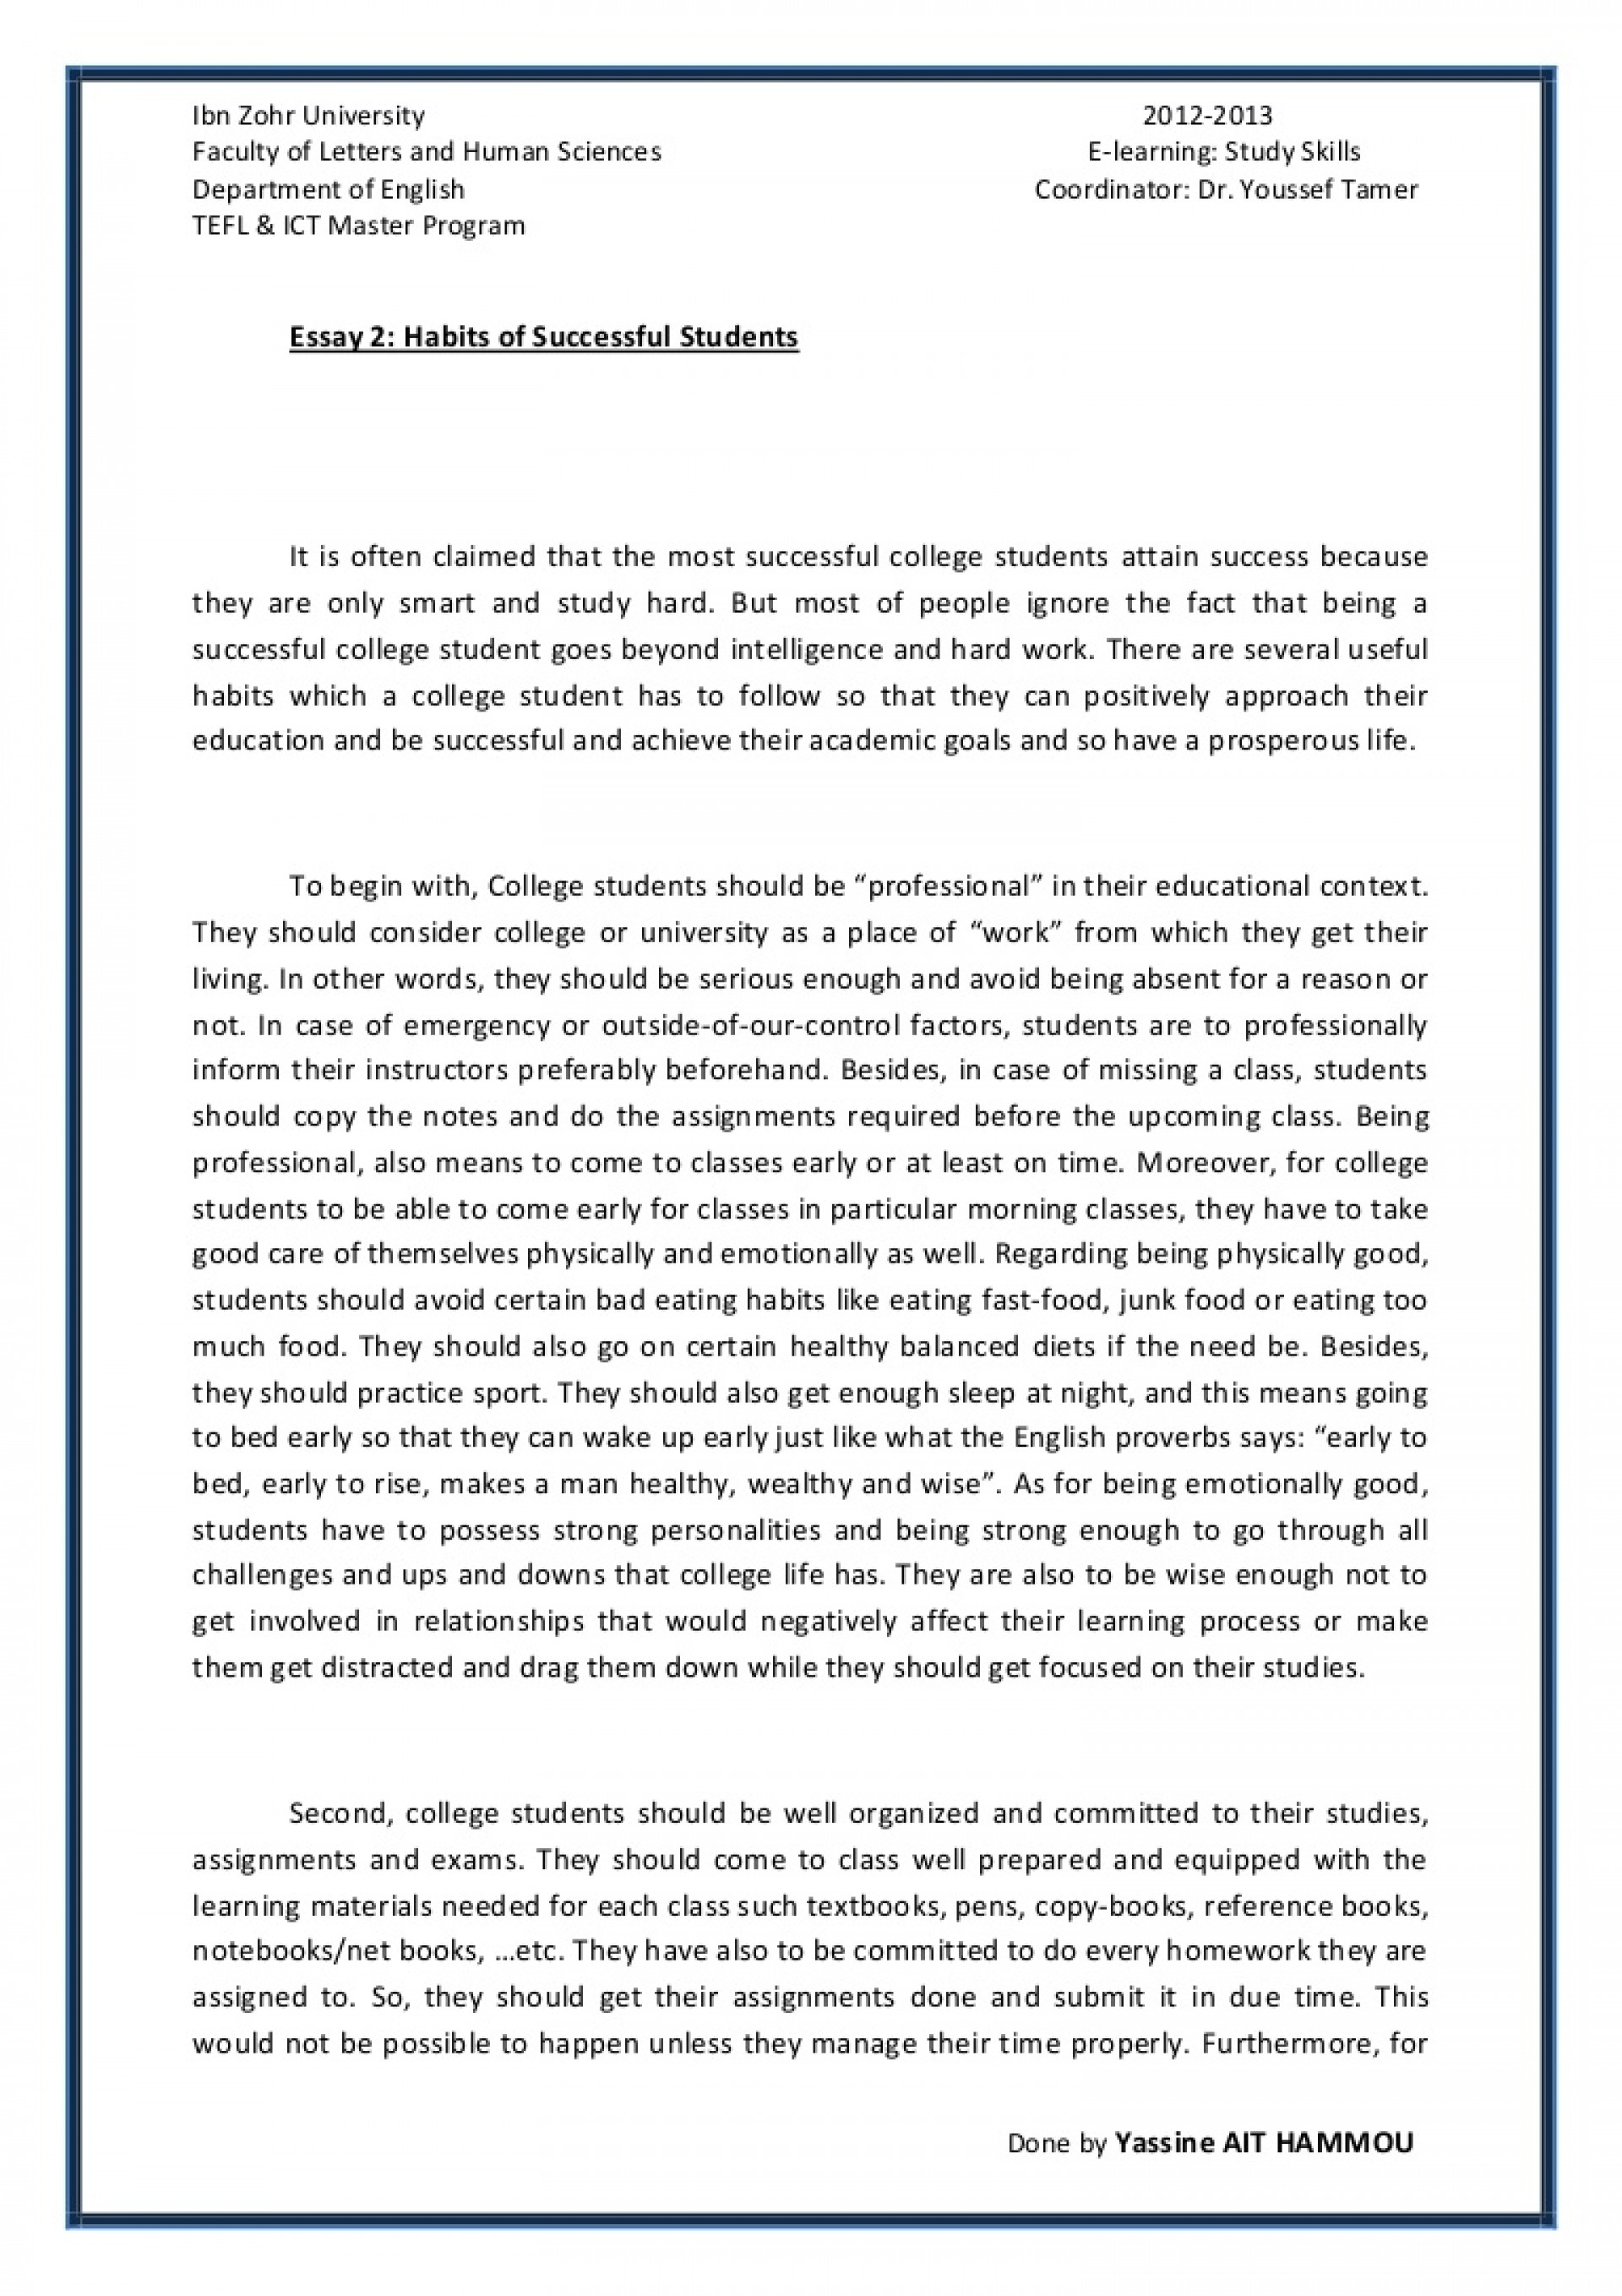 004 Essay Example Essay2 Succesfulcollegestudentshabitsbyyassineaithammou Phpapp01 Thumbnail About Good Staggering A Student Responsibilities Of In Urdu Write An What Are The Quality Characteristics 1920